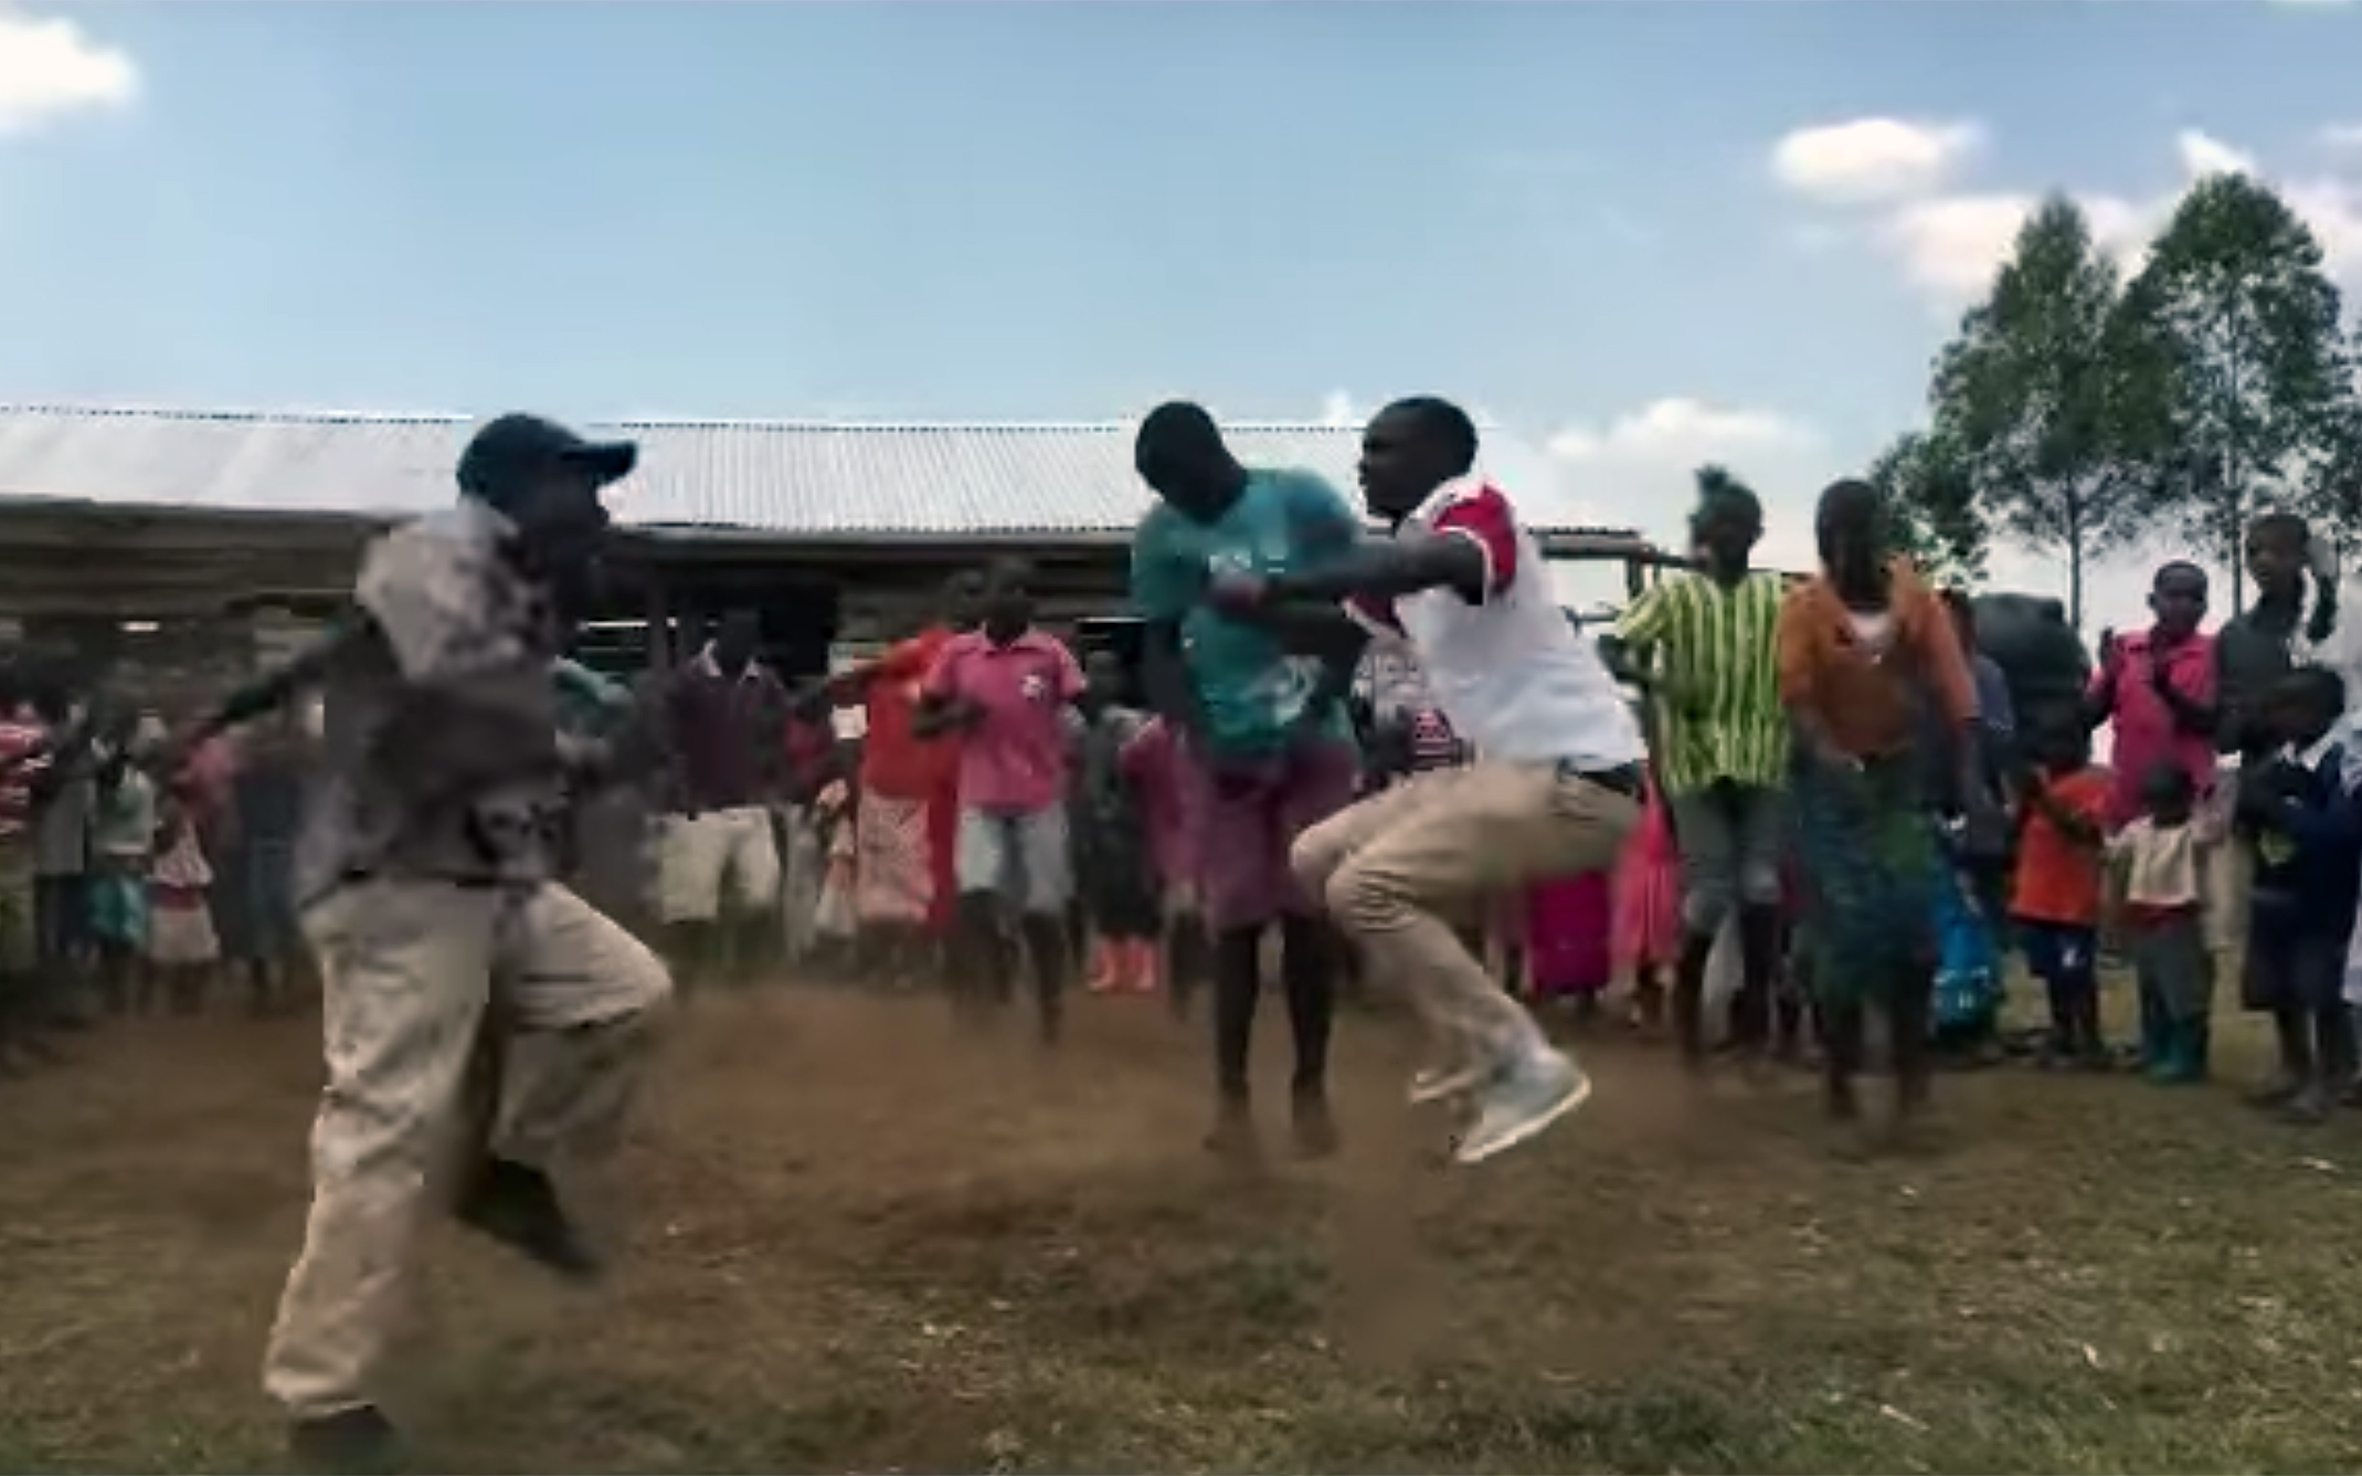 64.Bakiga DANCES / Uganda - Bakiga DANCES are traditional dances of Bakiga people of the Kigezi region in southern Uganda, such as Ekizino. The weather in this region is similar to that of many European mountain countries, and the region is often called the